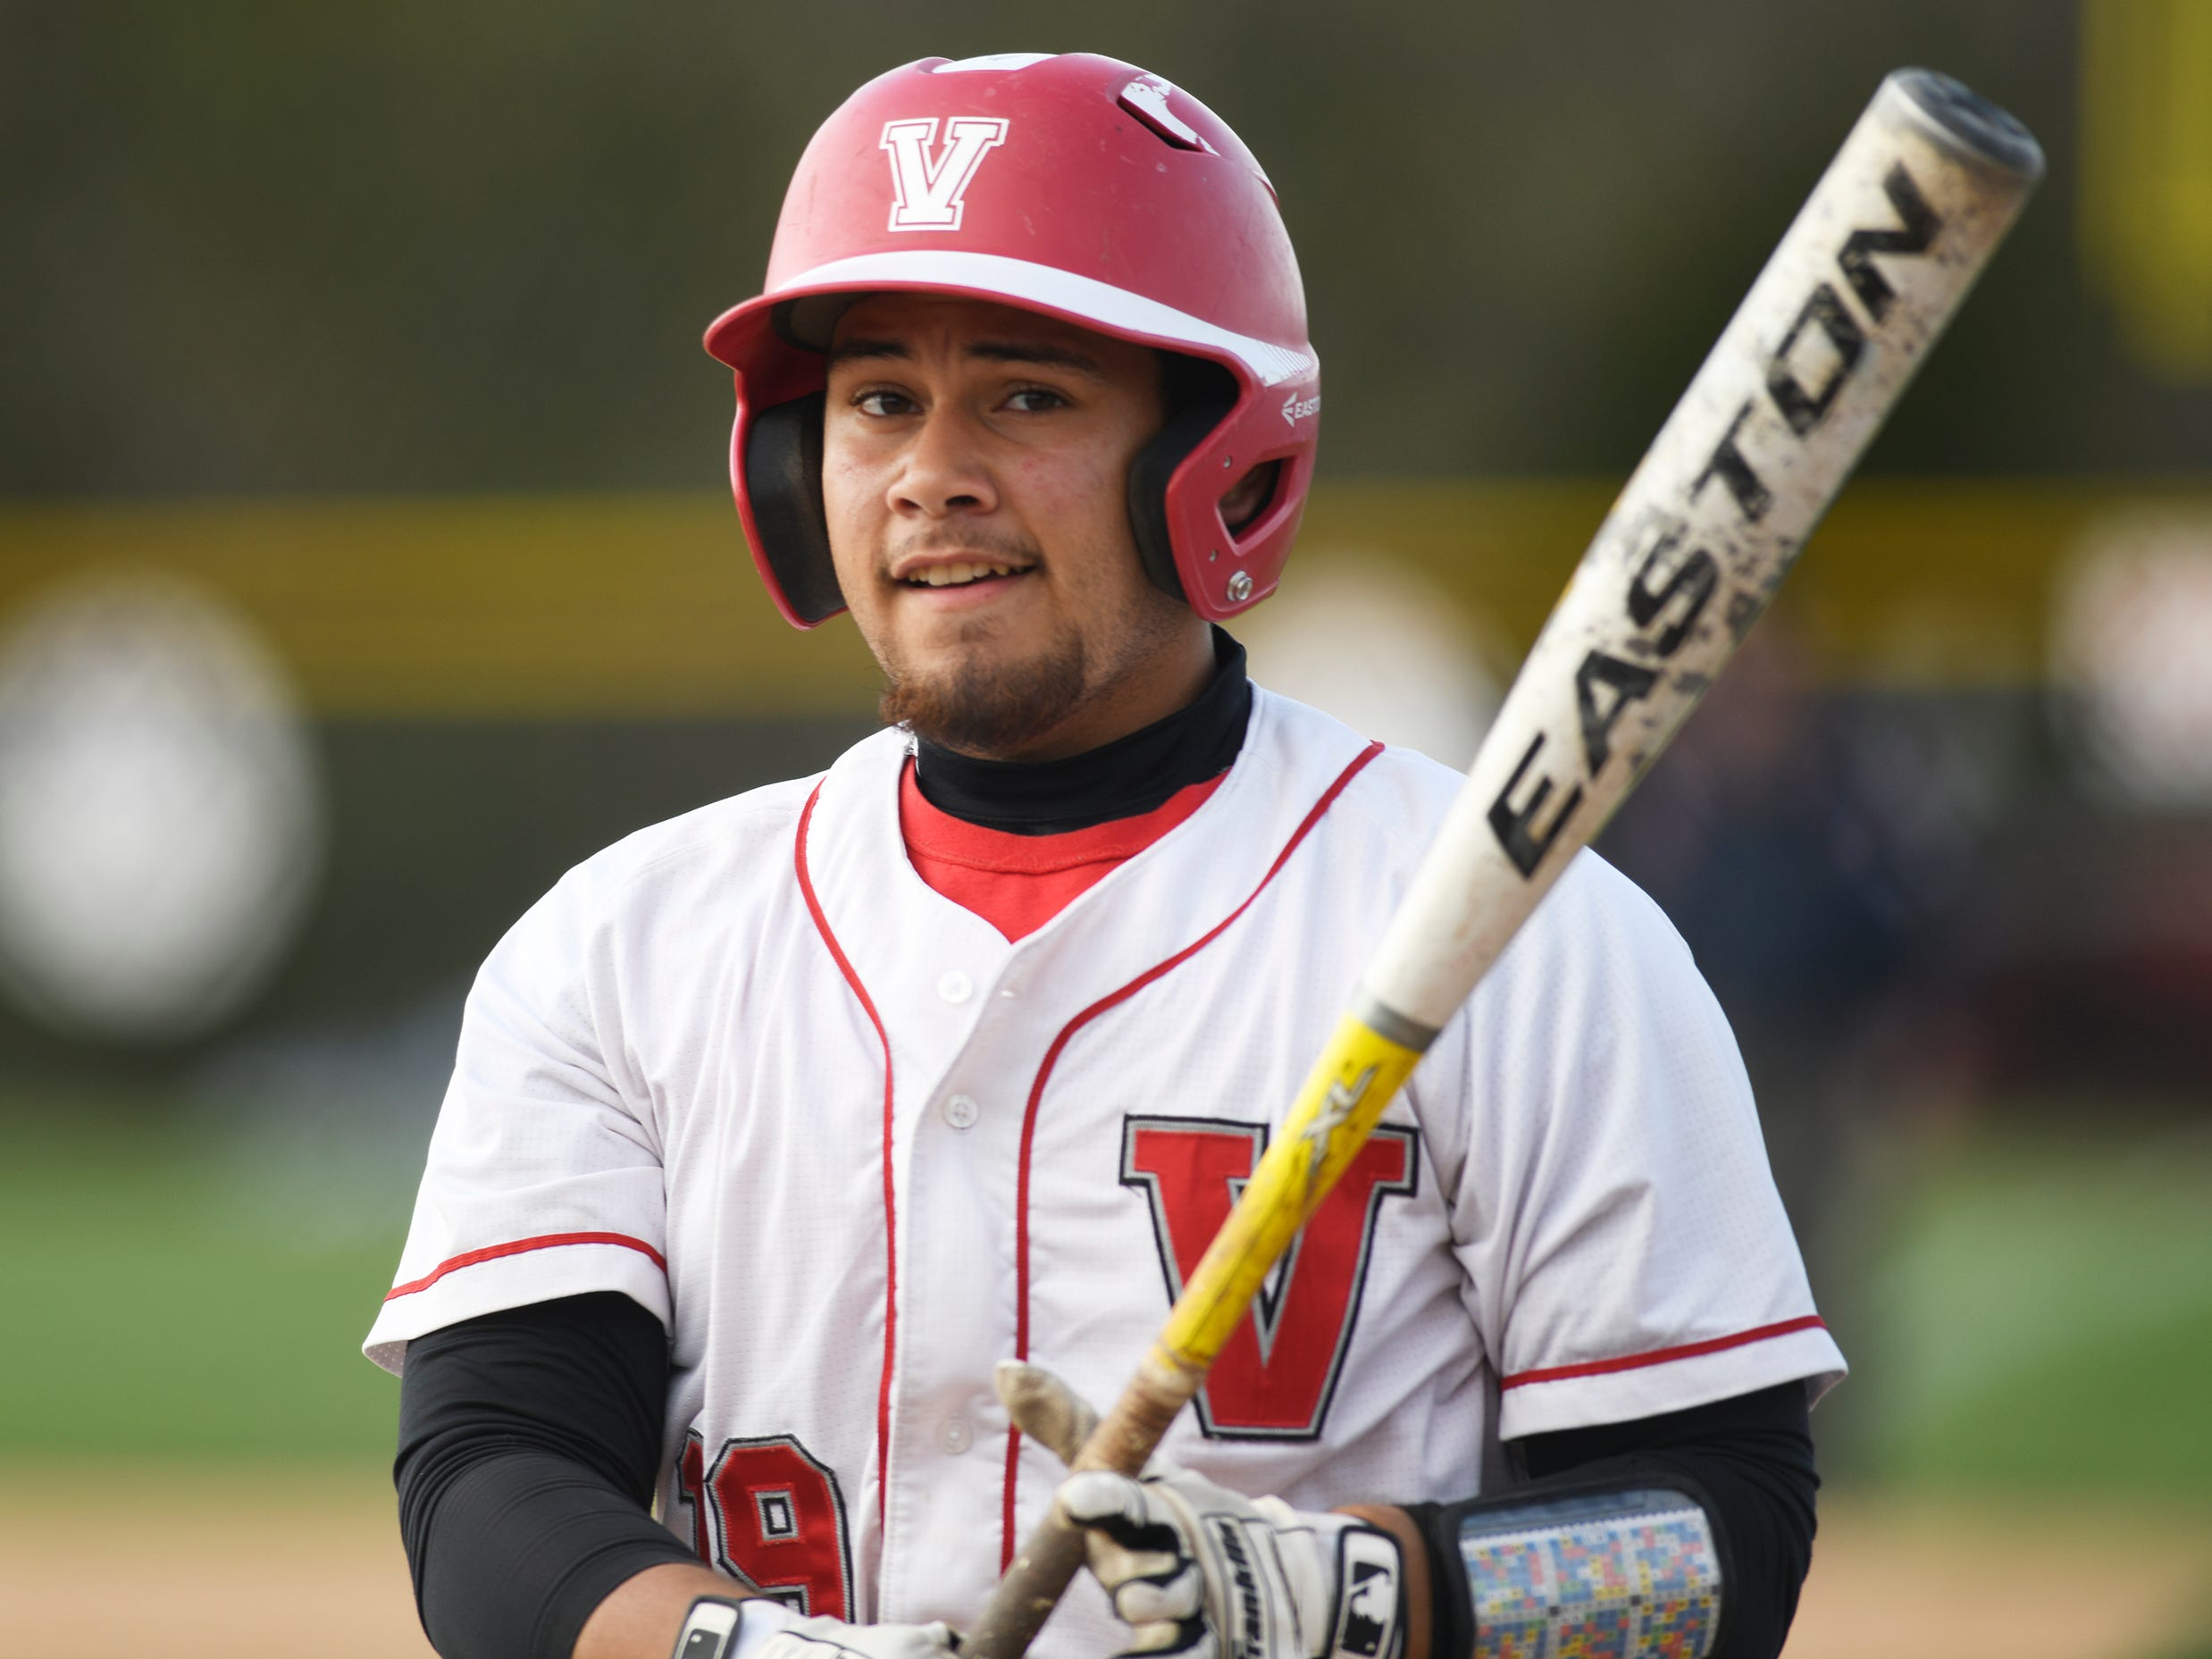 Vineland's Steven Gonzalez ready to bat in a game against visiting Atlantic City on Wednesday. The Fighting Clan topped the Vikings 12-2.